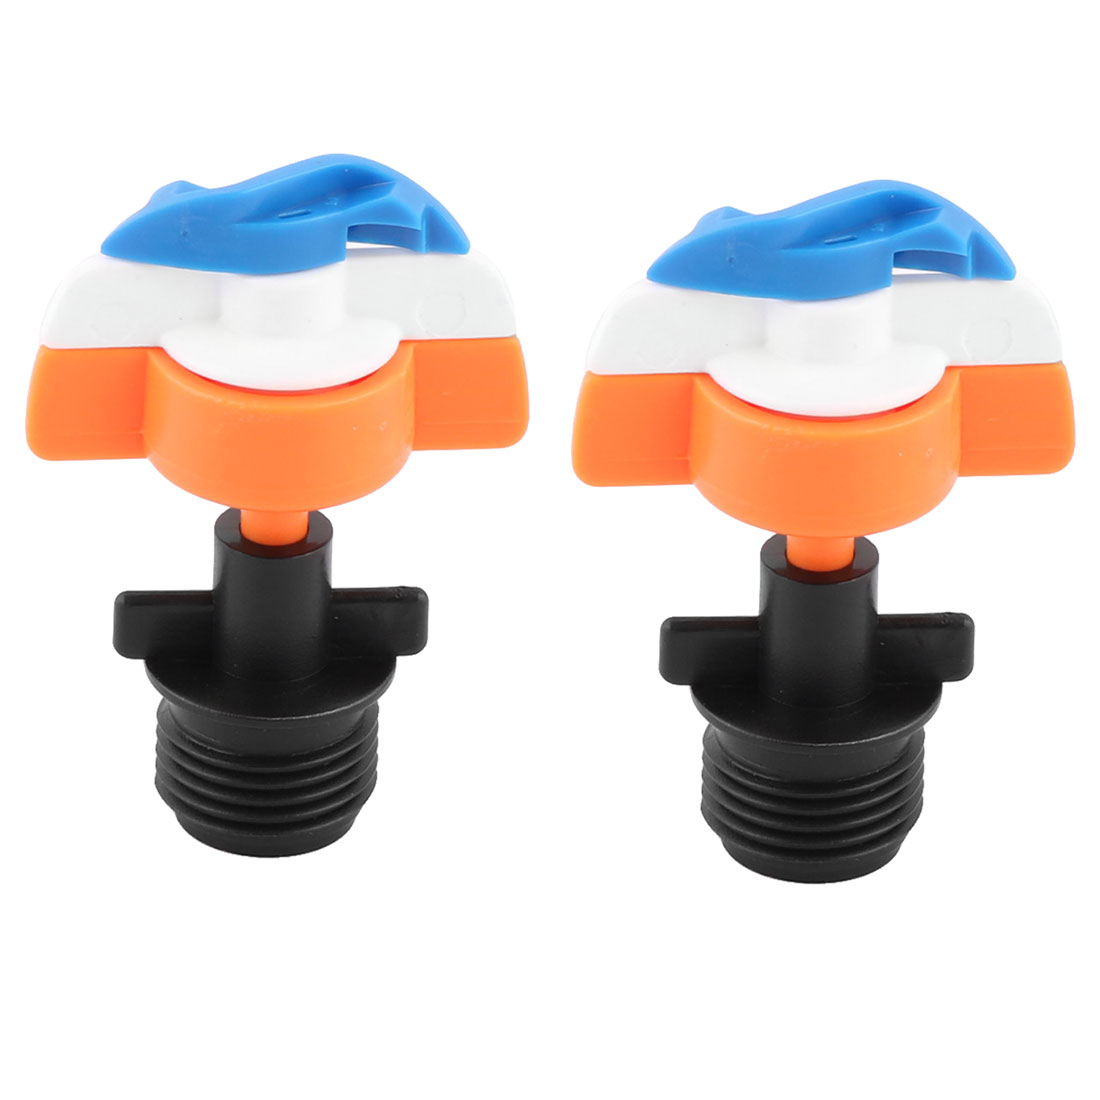 Home Irrigation Accessory Plastic Plant Flower Watering Sprinkler Nozzle 2pcs